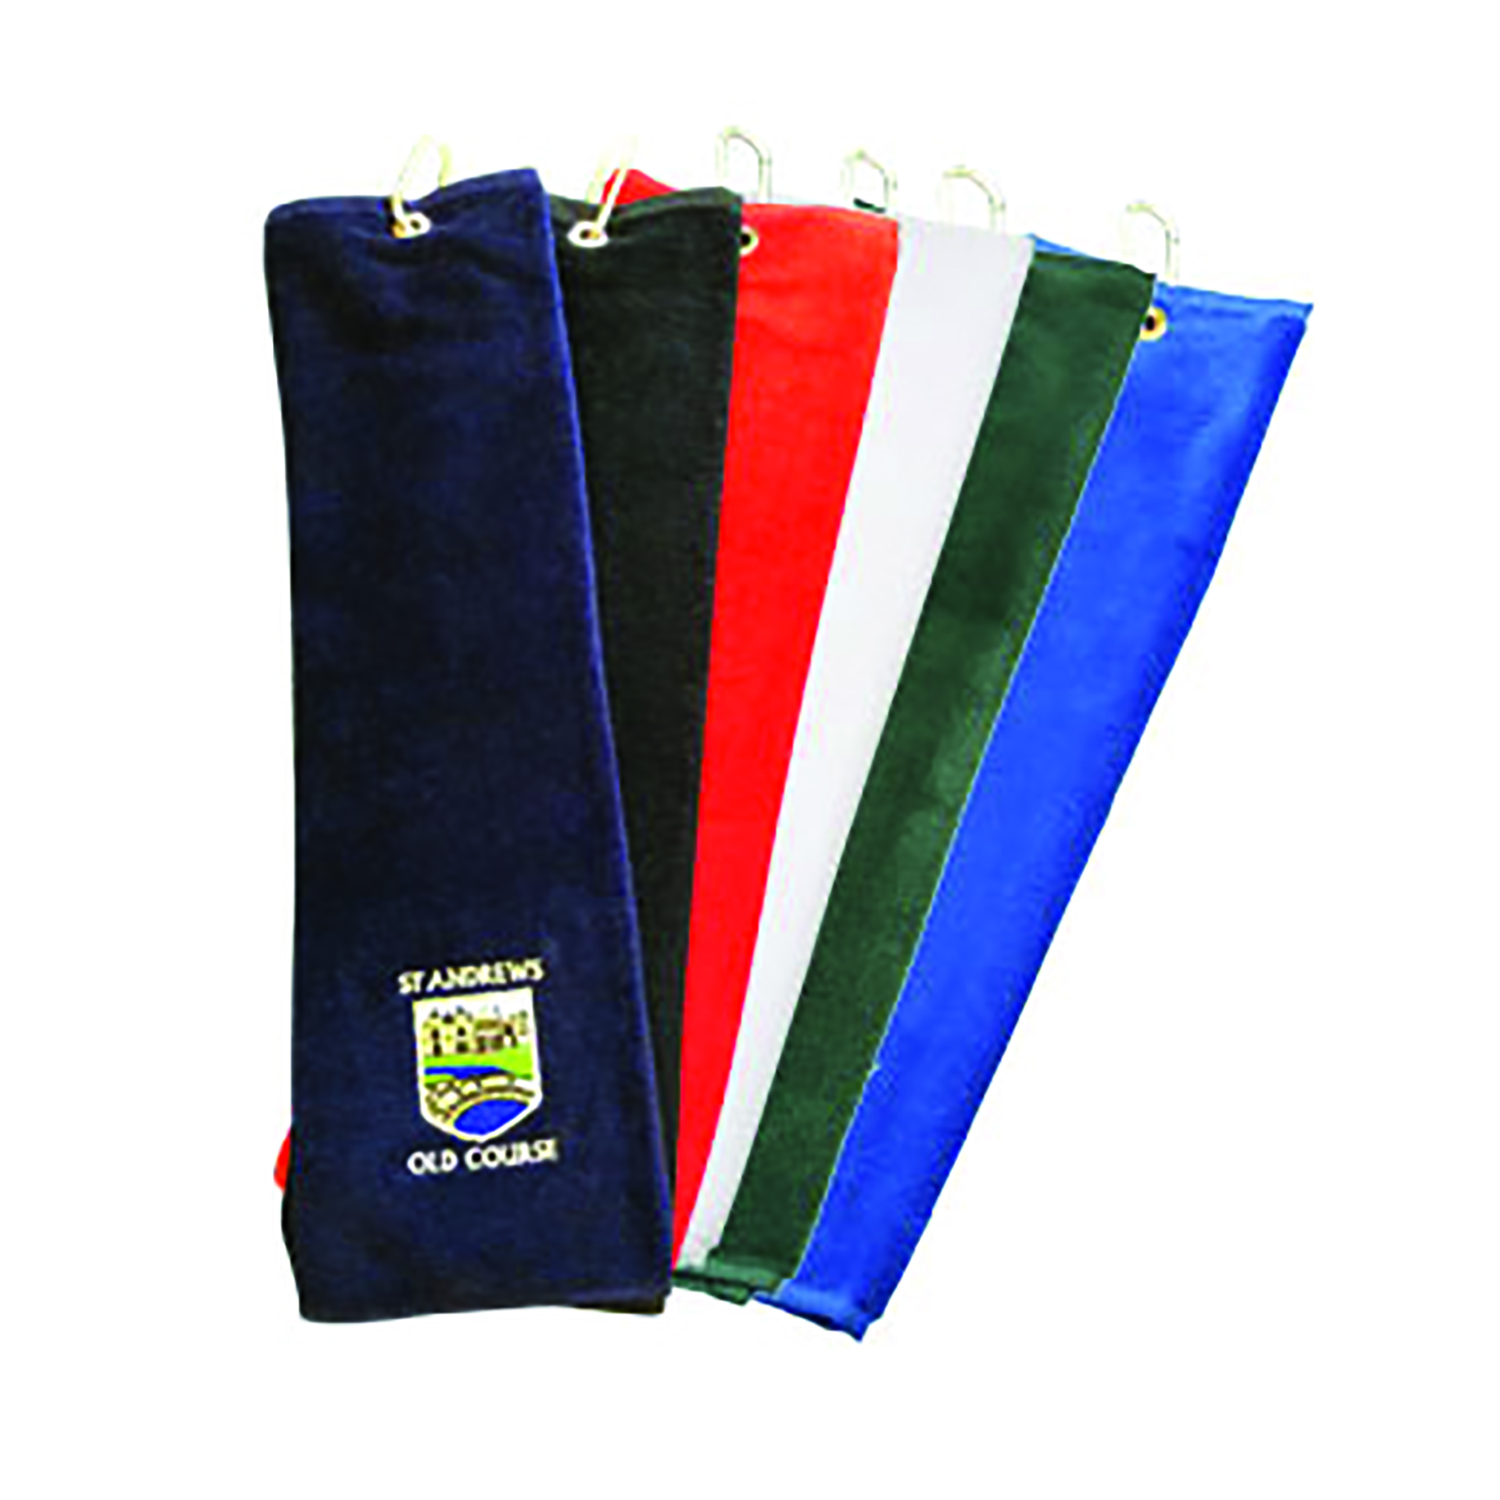 Thumbnail for Turnberry Tri-fold Golf Towel